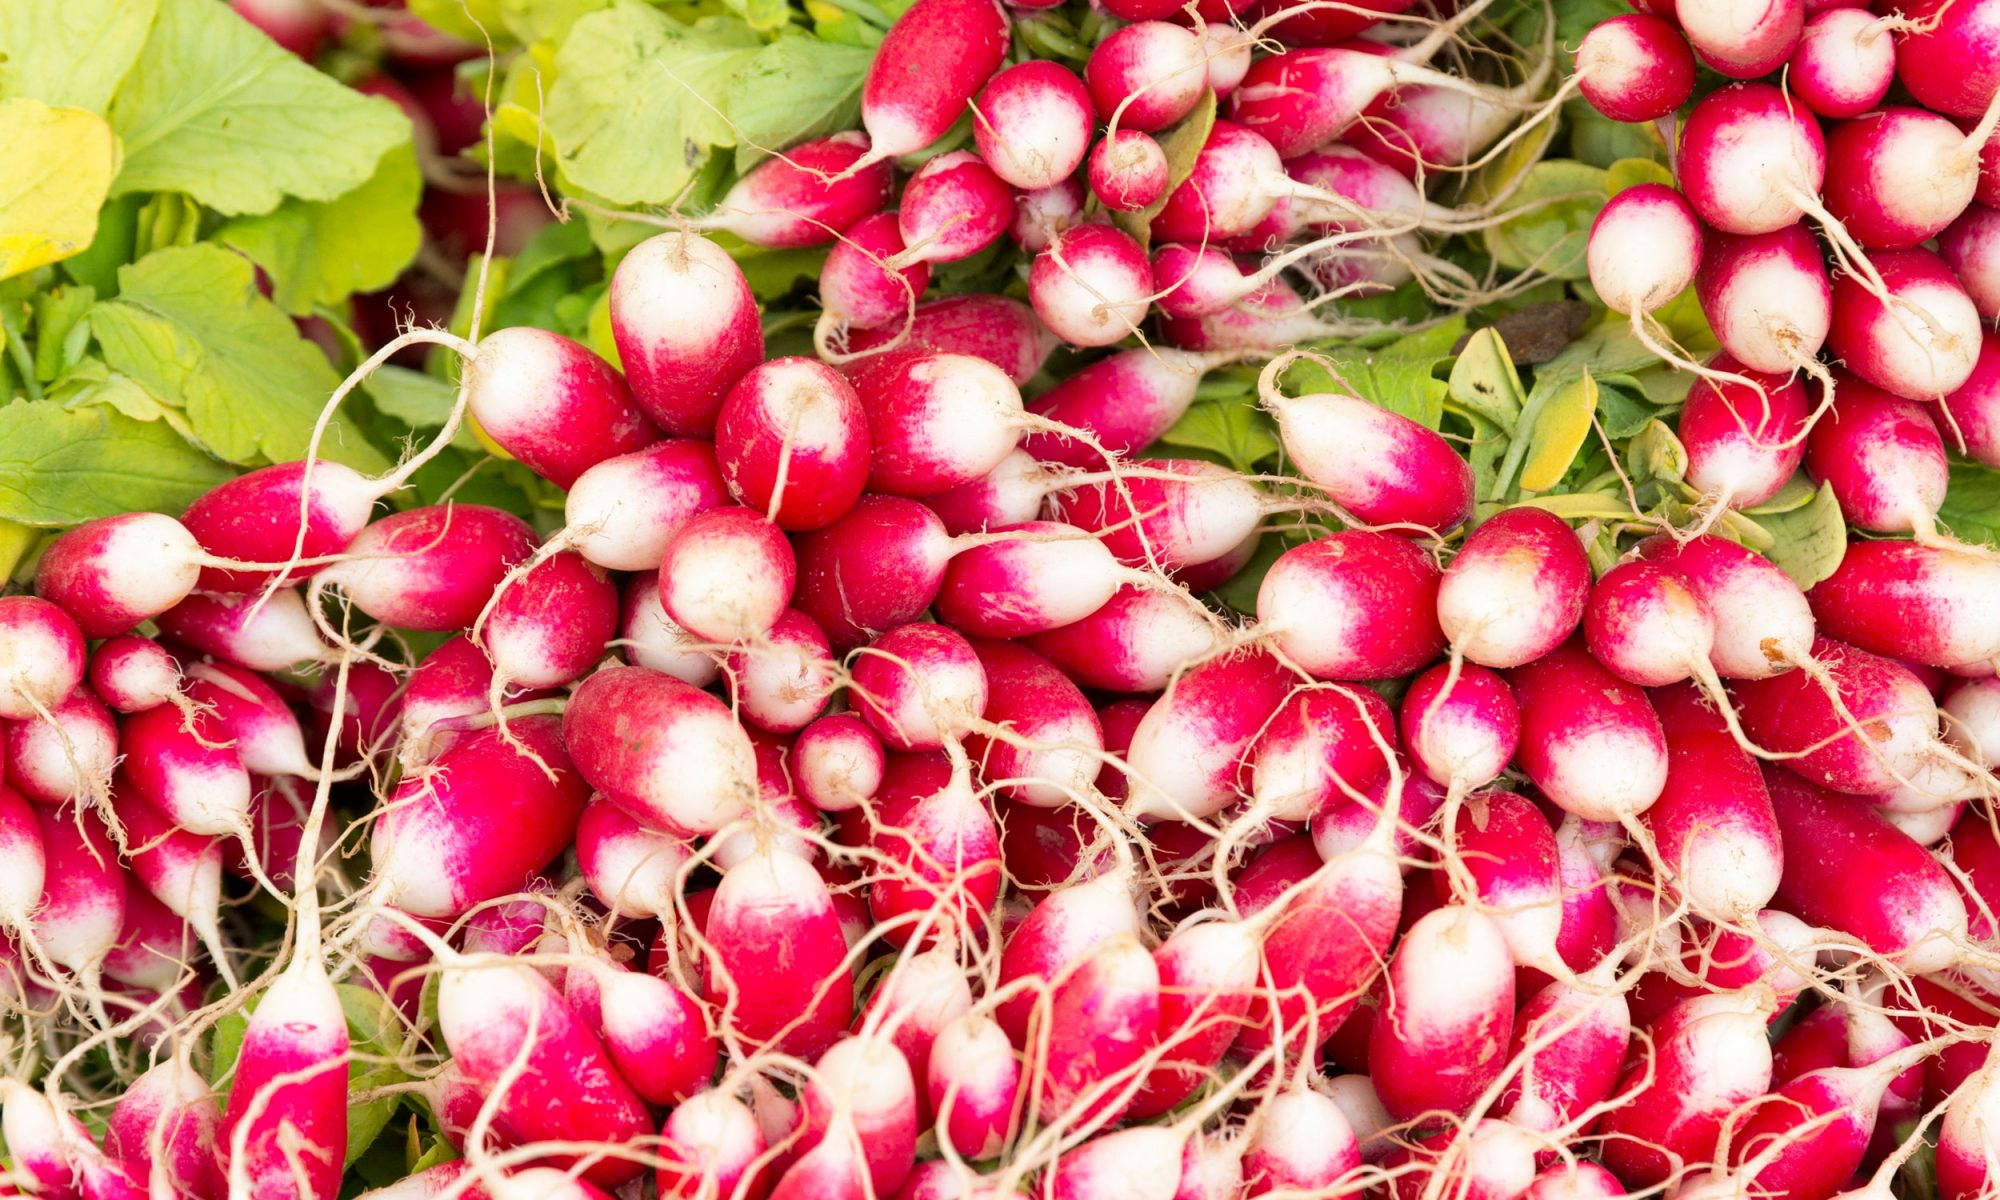 EC: Here's the Difference Between Radishes and Breakfast Radishes